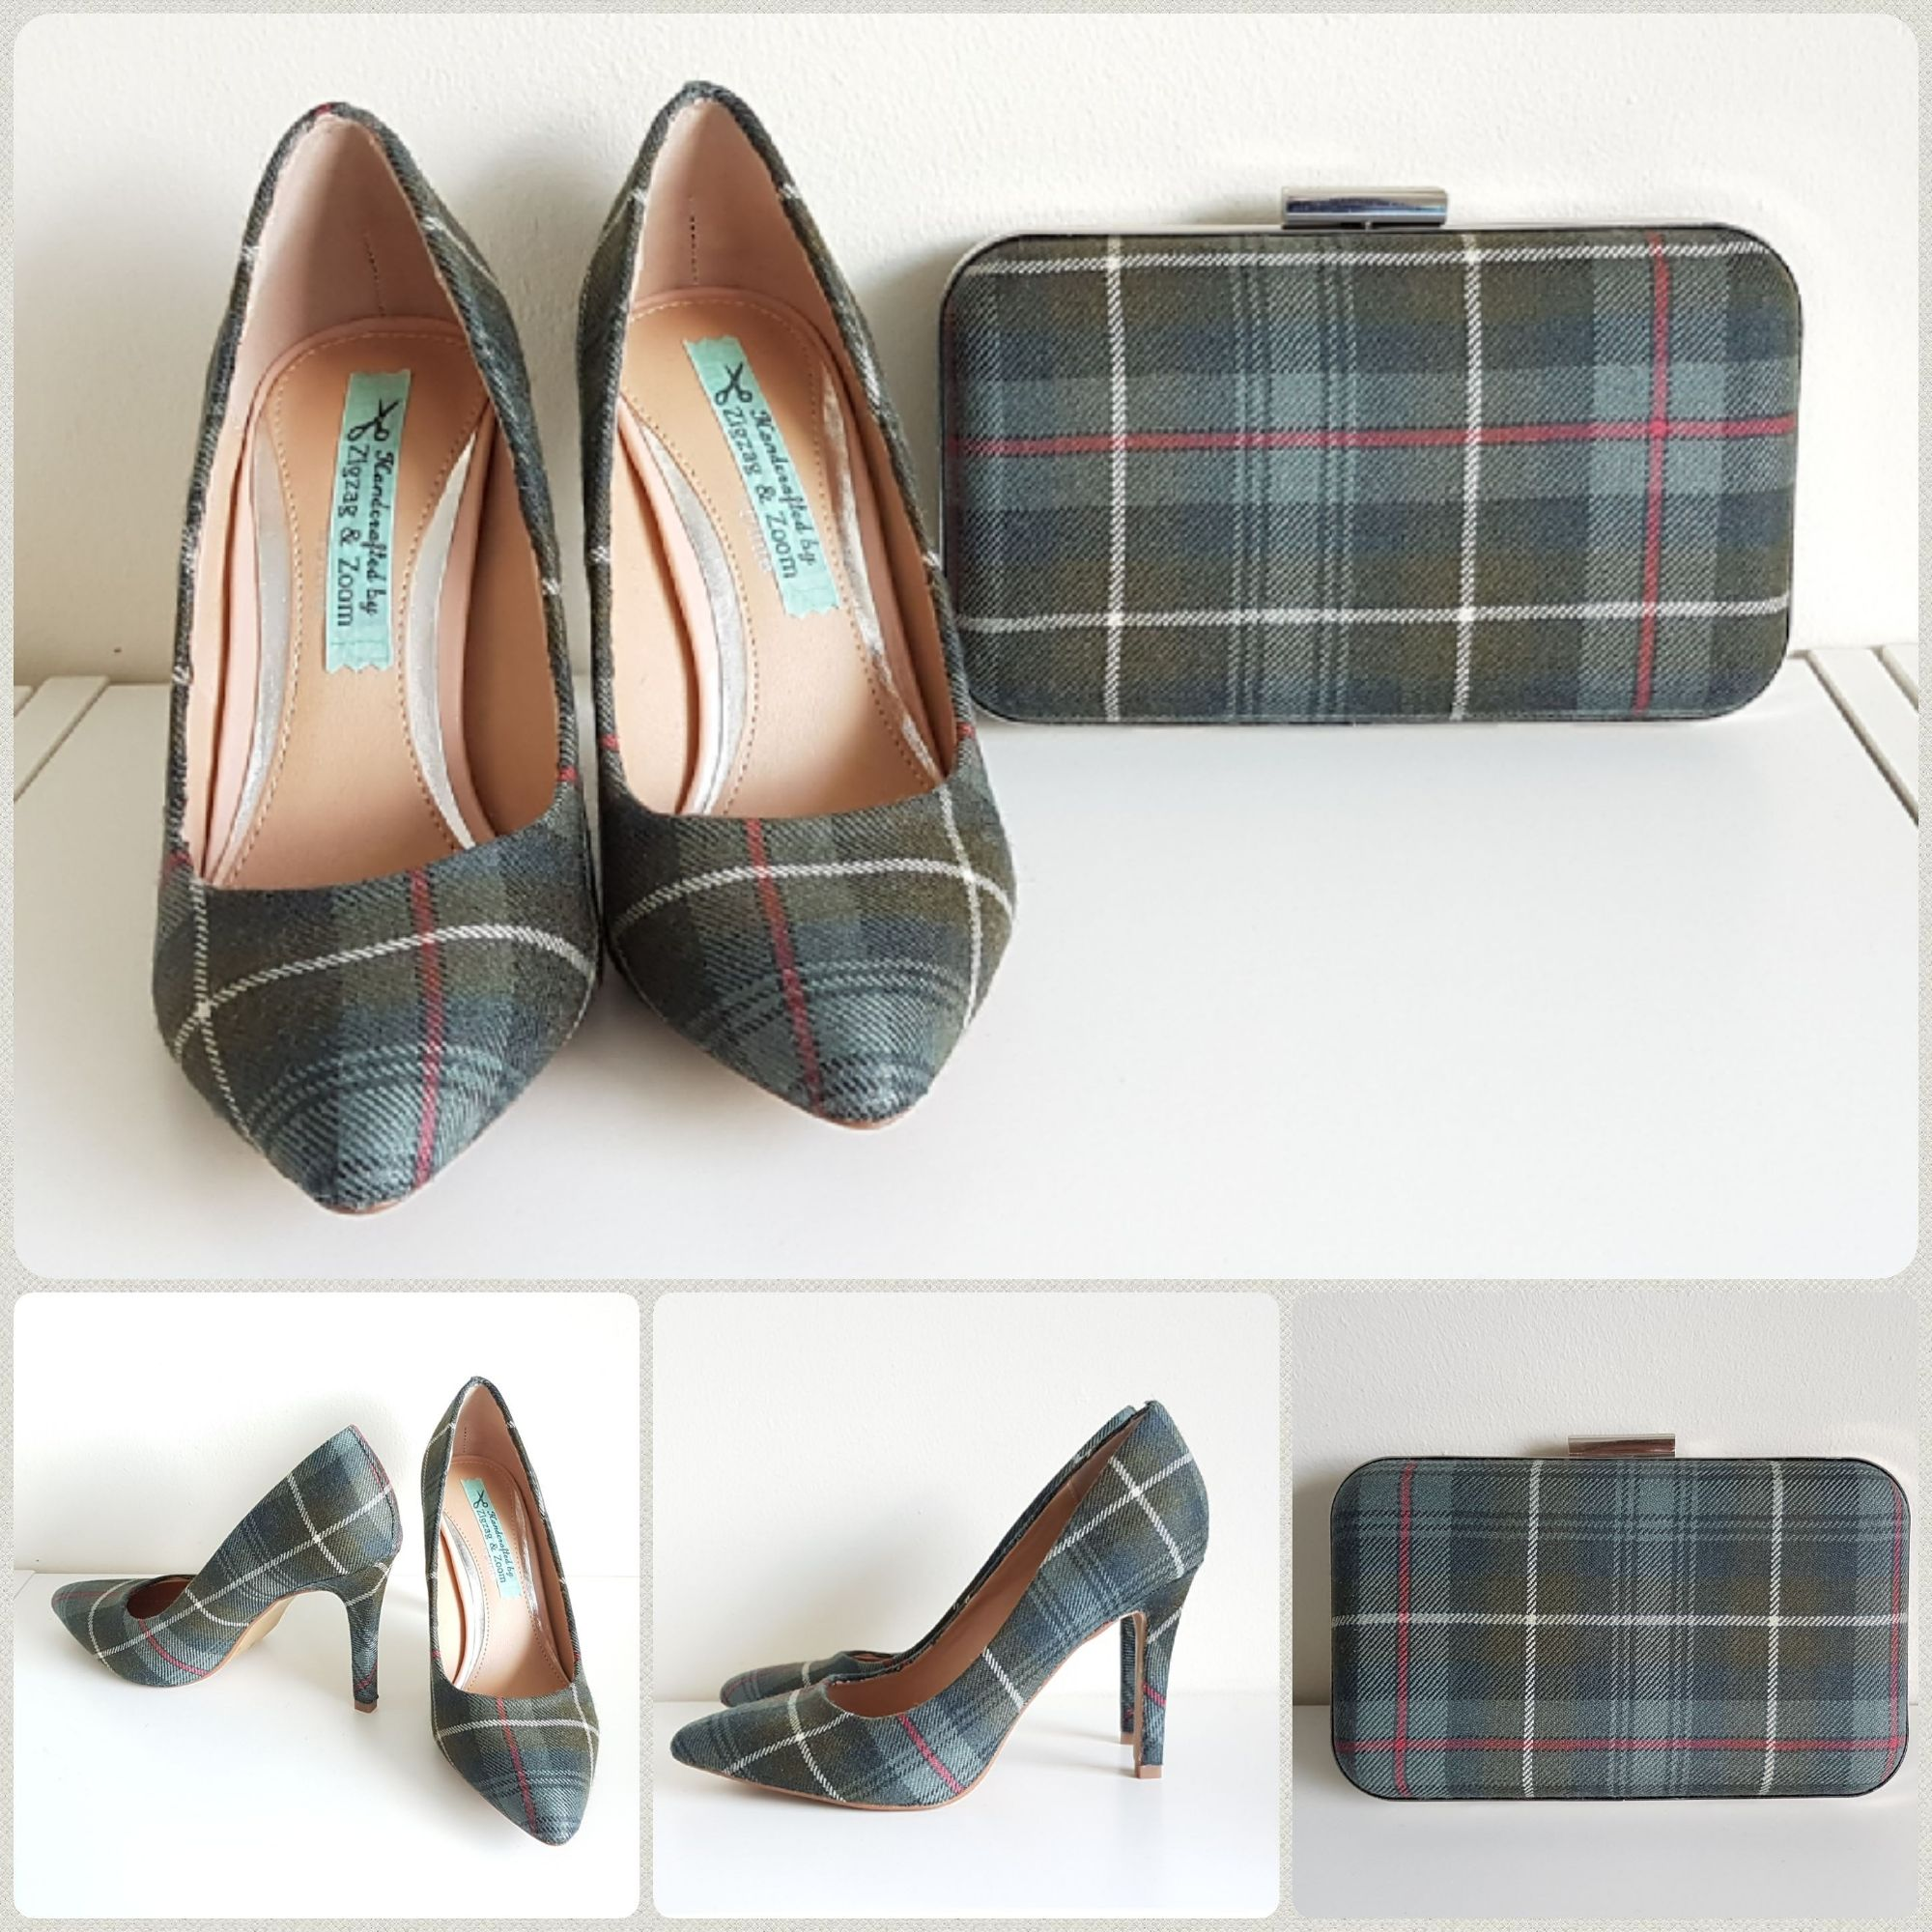 Weathered Mackenzie Tartan shoes & matching clutch bag